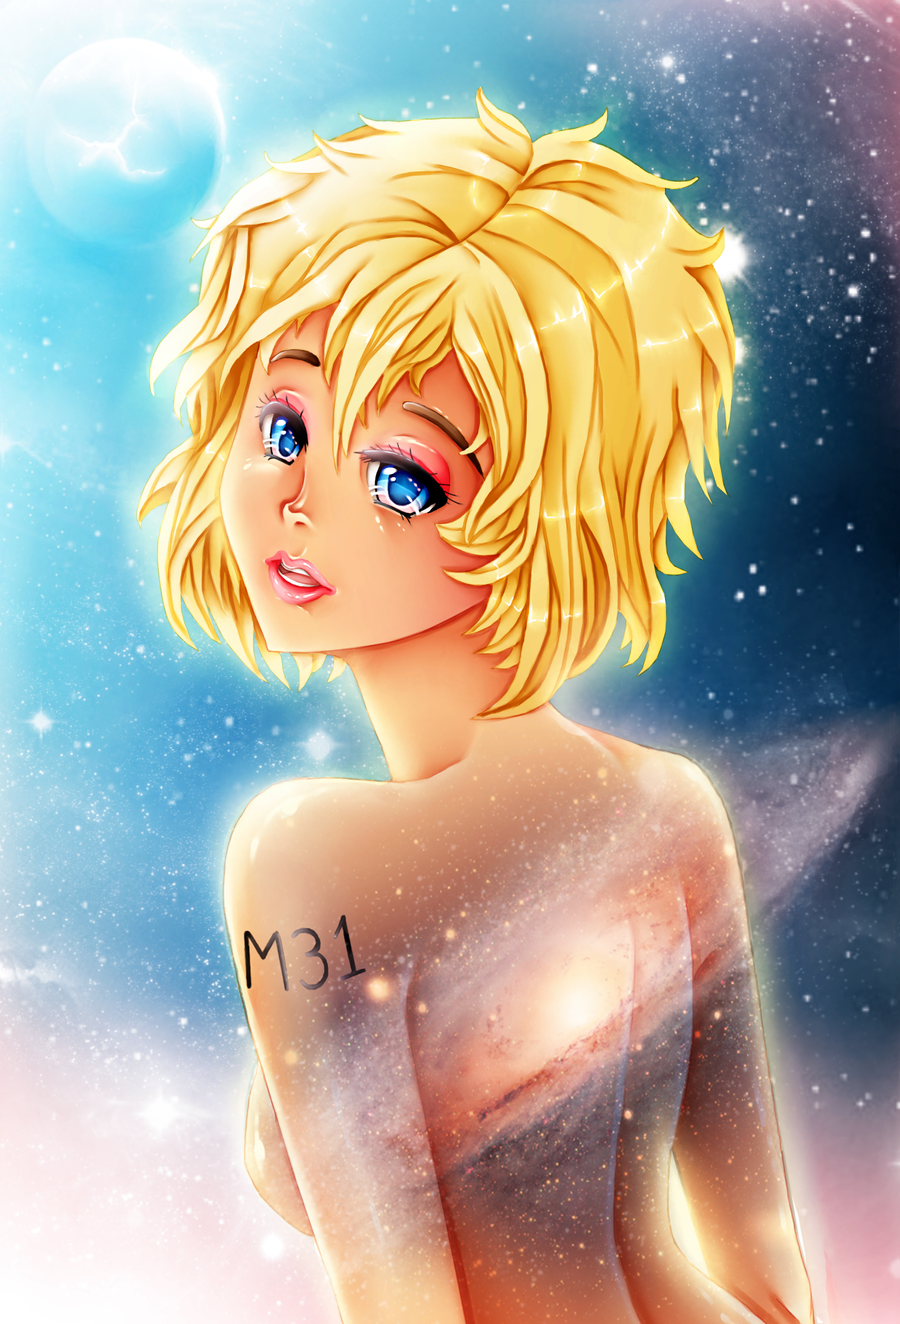 M31 by M-3-1